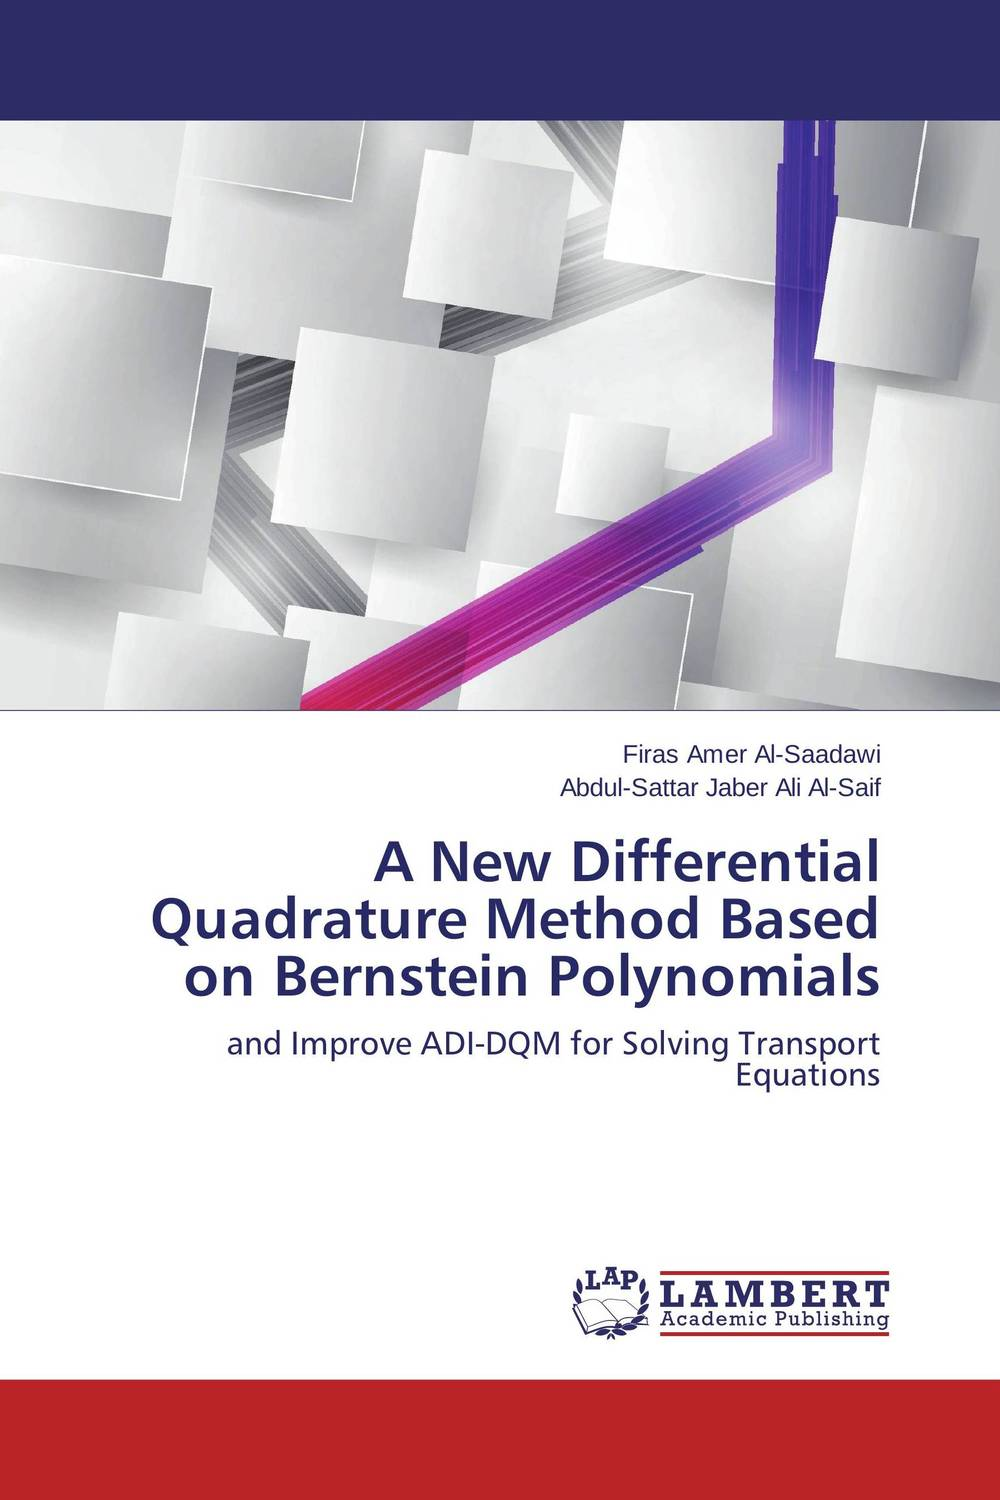 A New Differential Quadrature Method Based on Bernstein Polynomials collocation methods for volterra integral and related functional differential equations